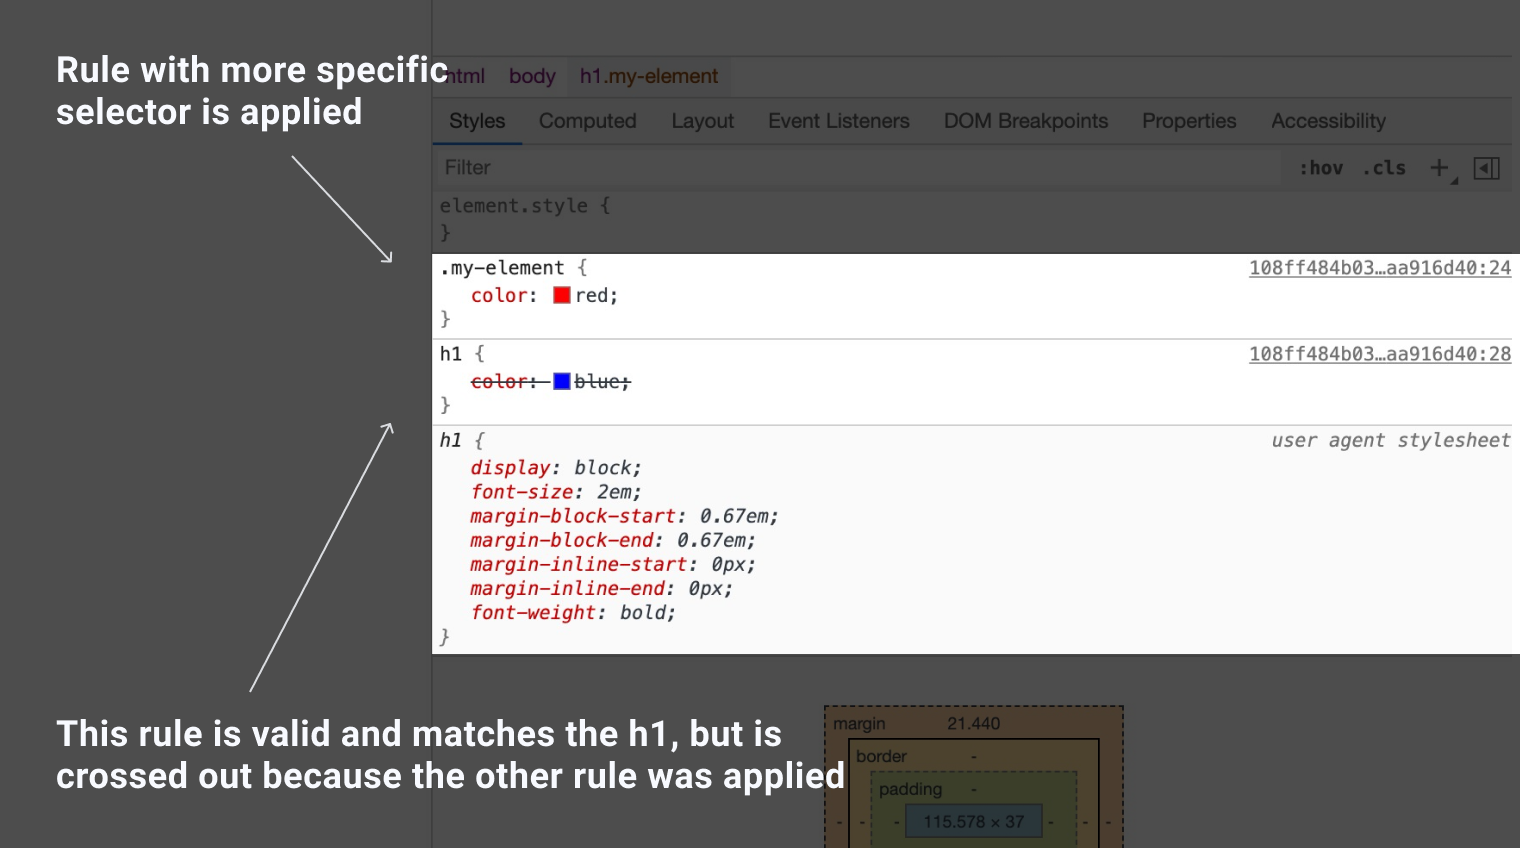 An image of browser DevTools with overwritten CSS crossed out